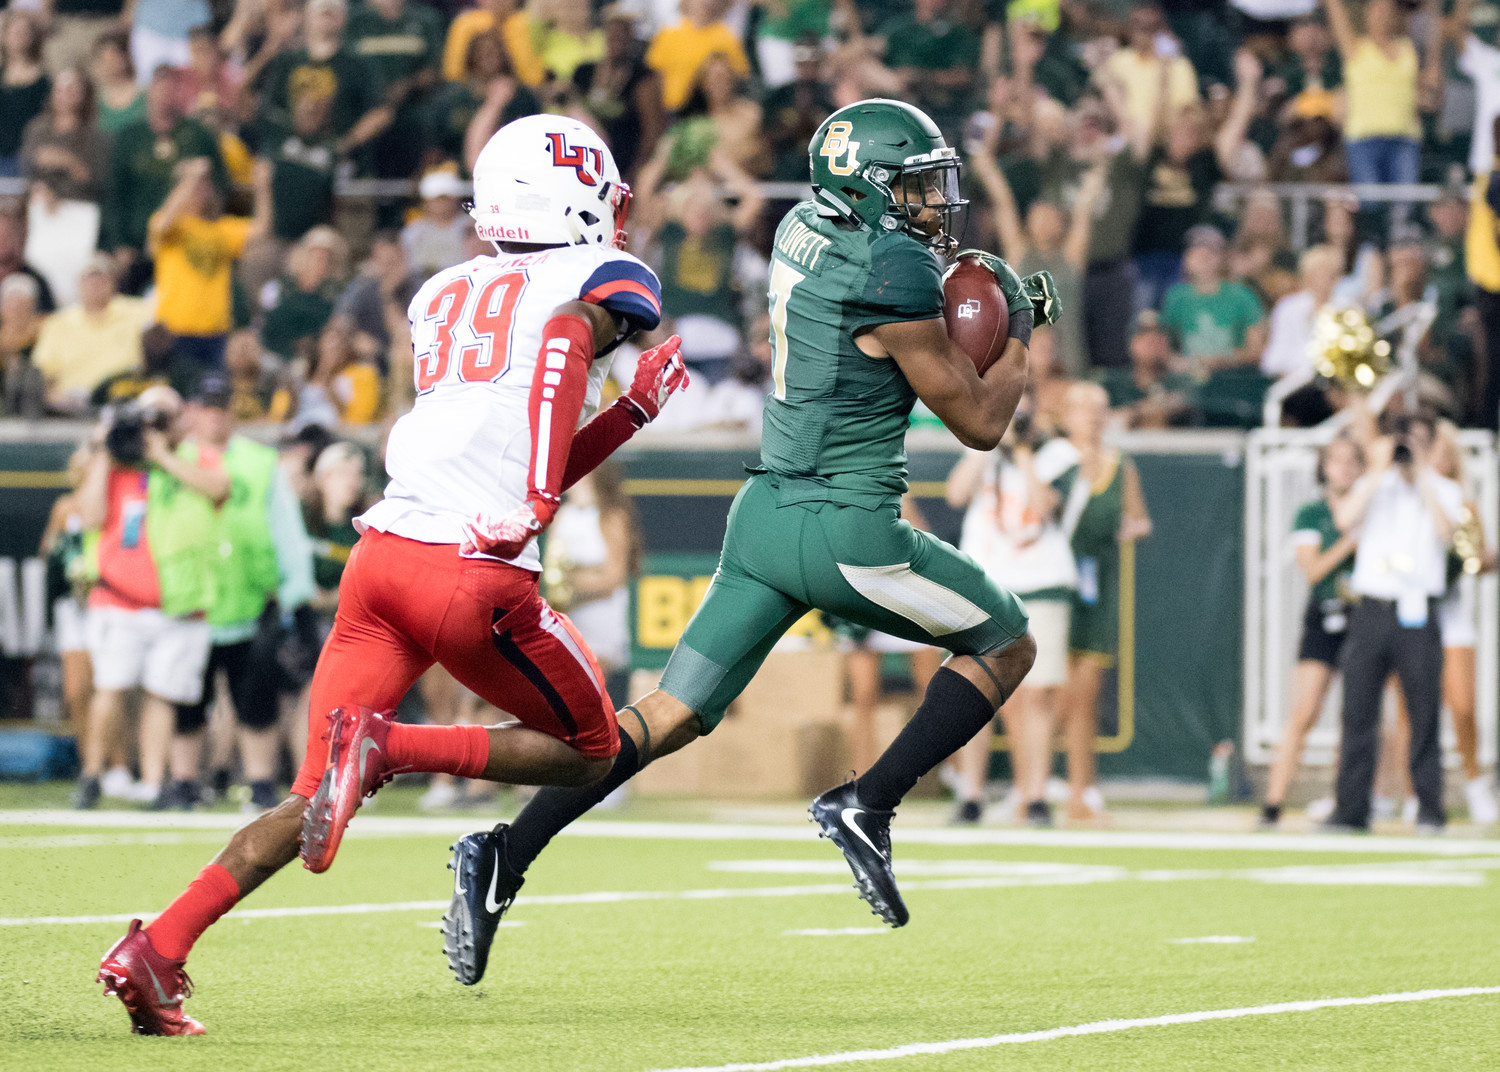 Baylor Bears running back John Lovett (7) runs toward the end zone for a touchdown during the second half of the college football game between the Baylor Bears and the Liberty Flames at McLane Stadium in Waco, Texas. Liberty won 48-45.